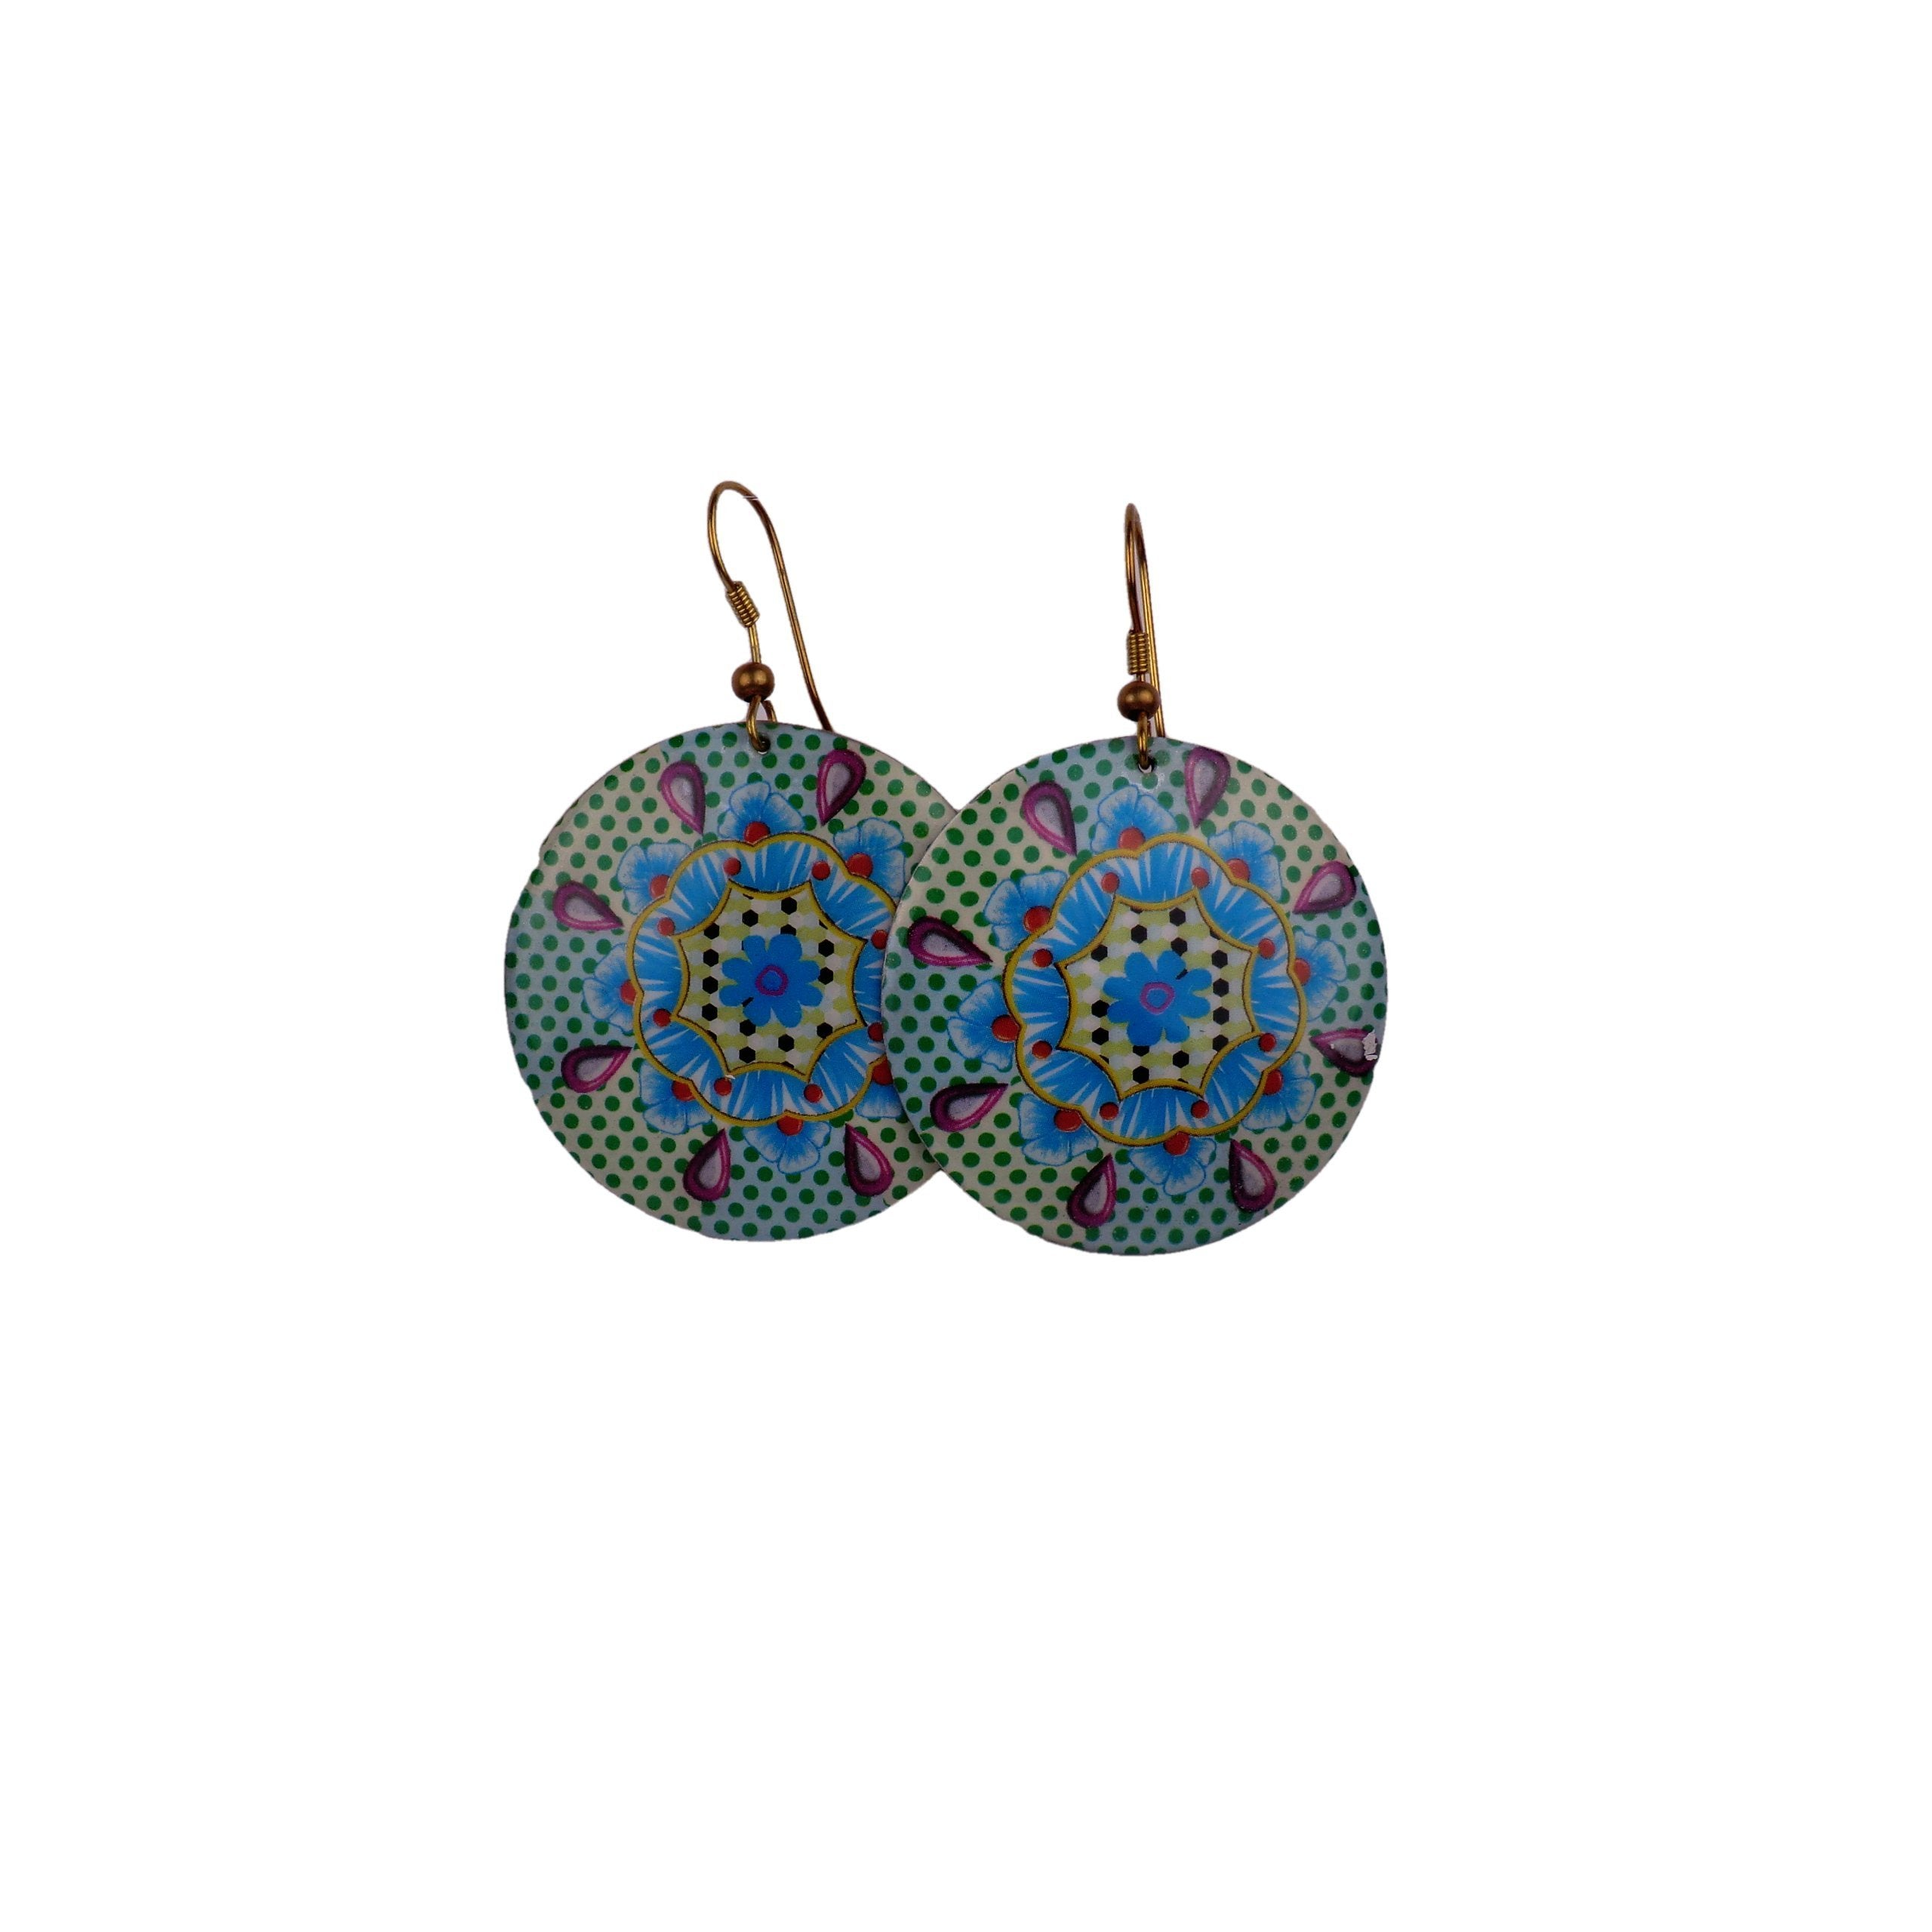 Turquoise and Green Earrings - Matico